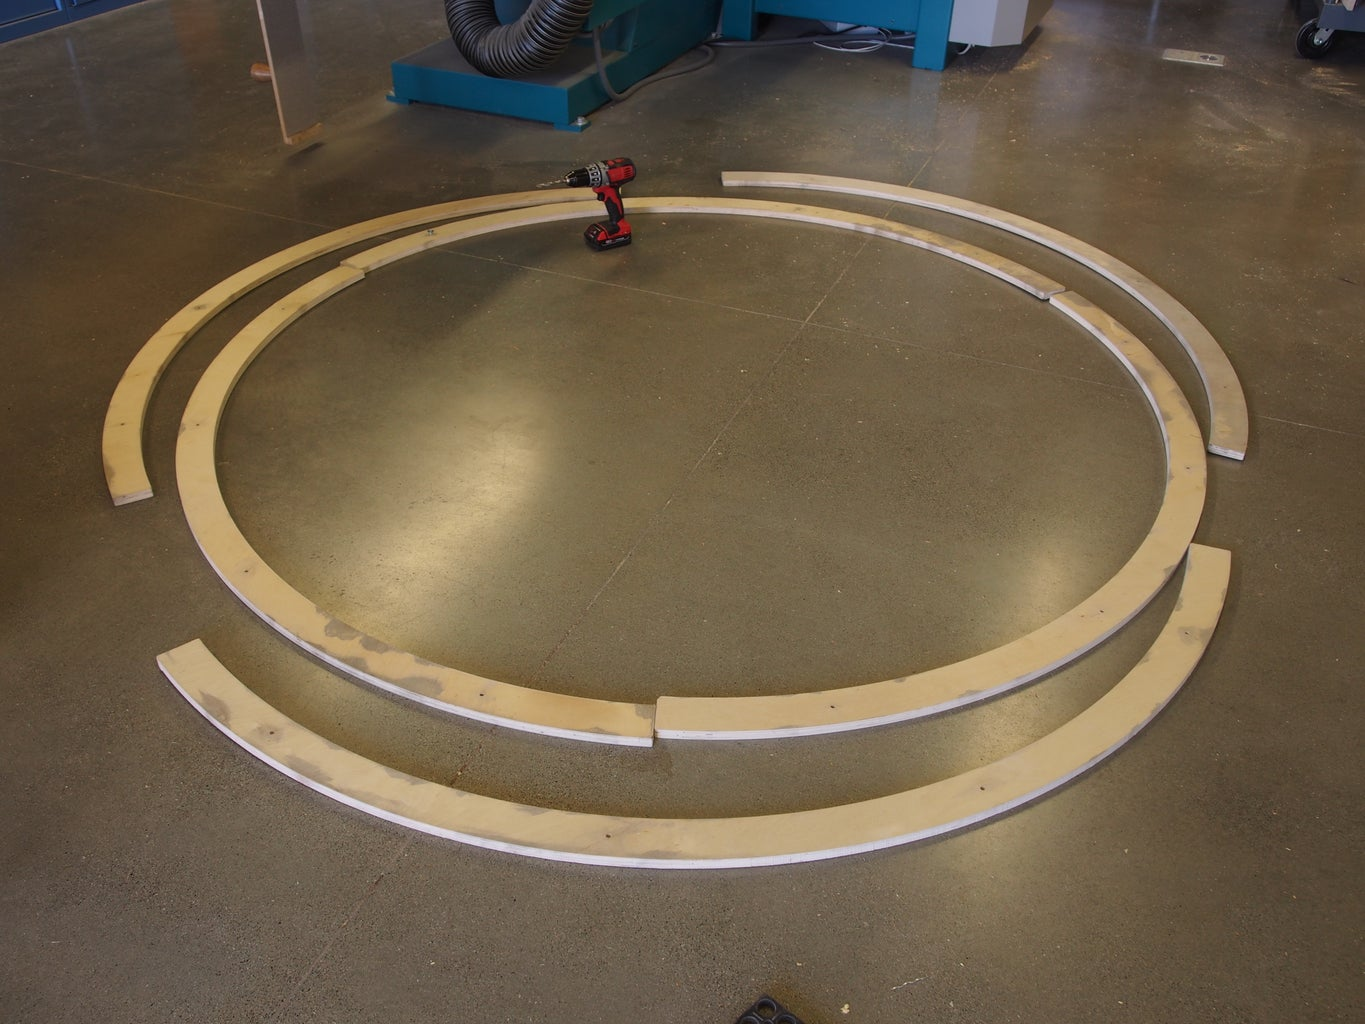 Lay Out the Rings